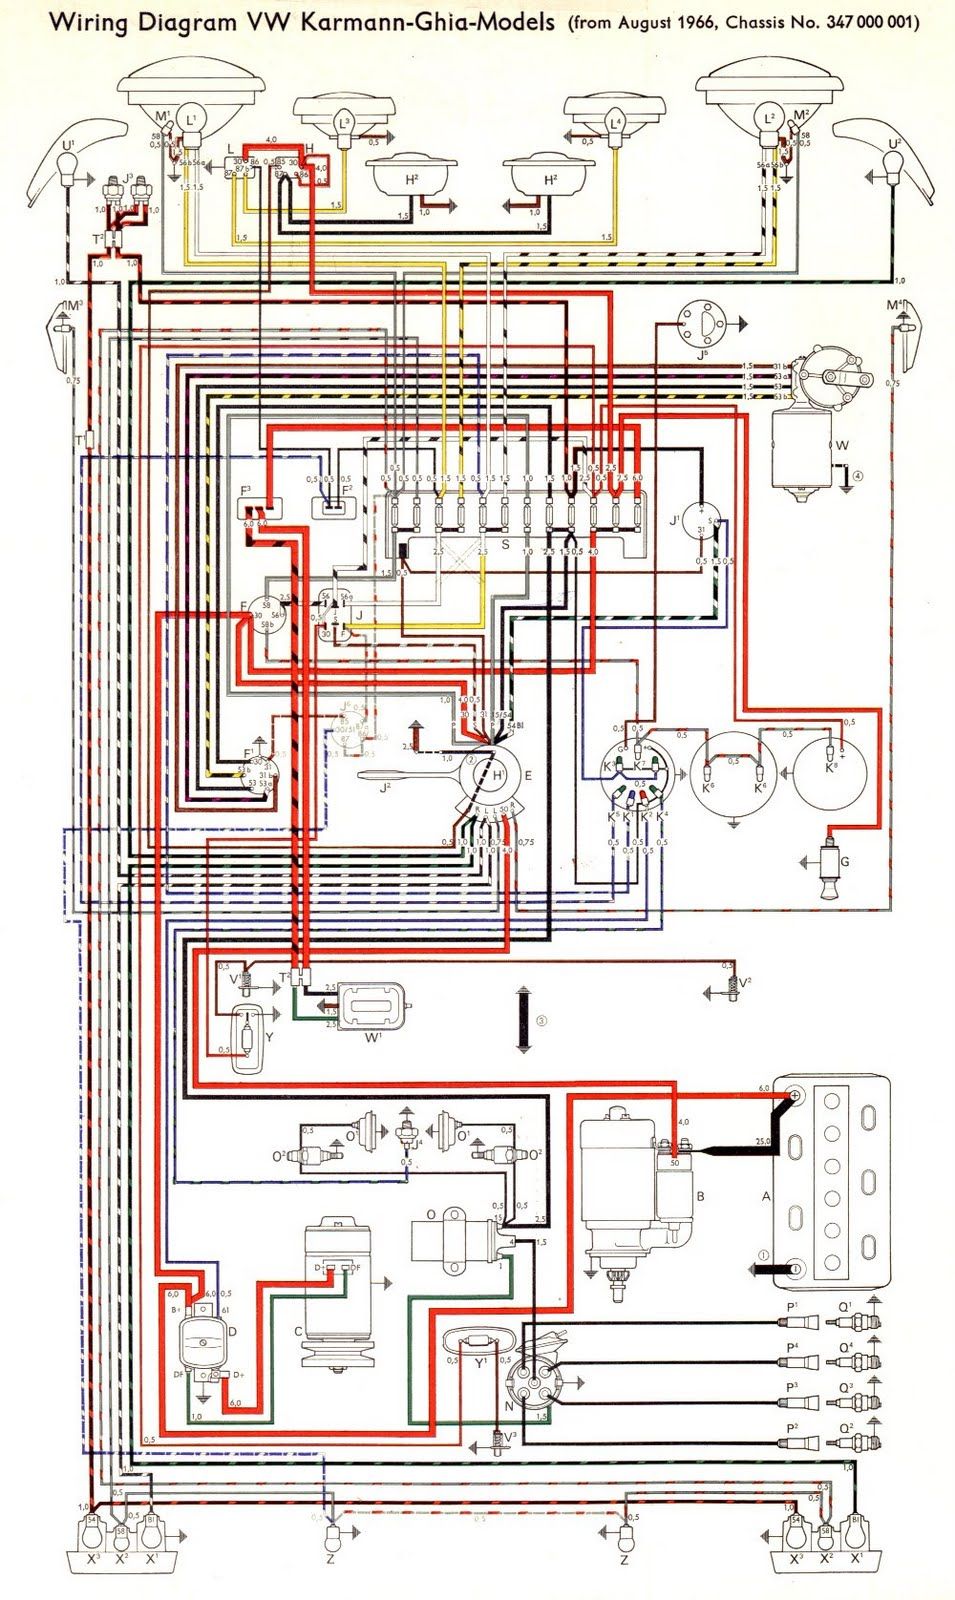 Pontiac Catalina C Star Chief C Bonneville C Grand Prix besides Vw Karmann Ghia Models Wiring Diagram besides Pontiac Catalina C Ventura C Star Chief C Bonneville moreover Chevrolet Corvette Wiring in addition Block. on mini truck wiring diagram